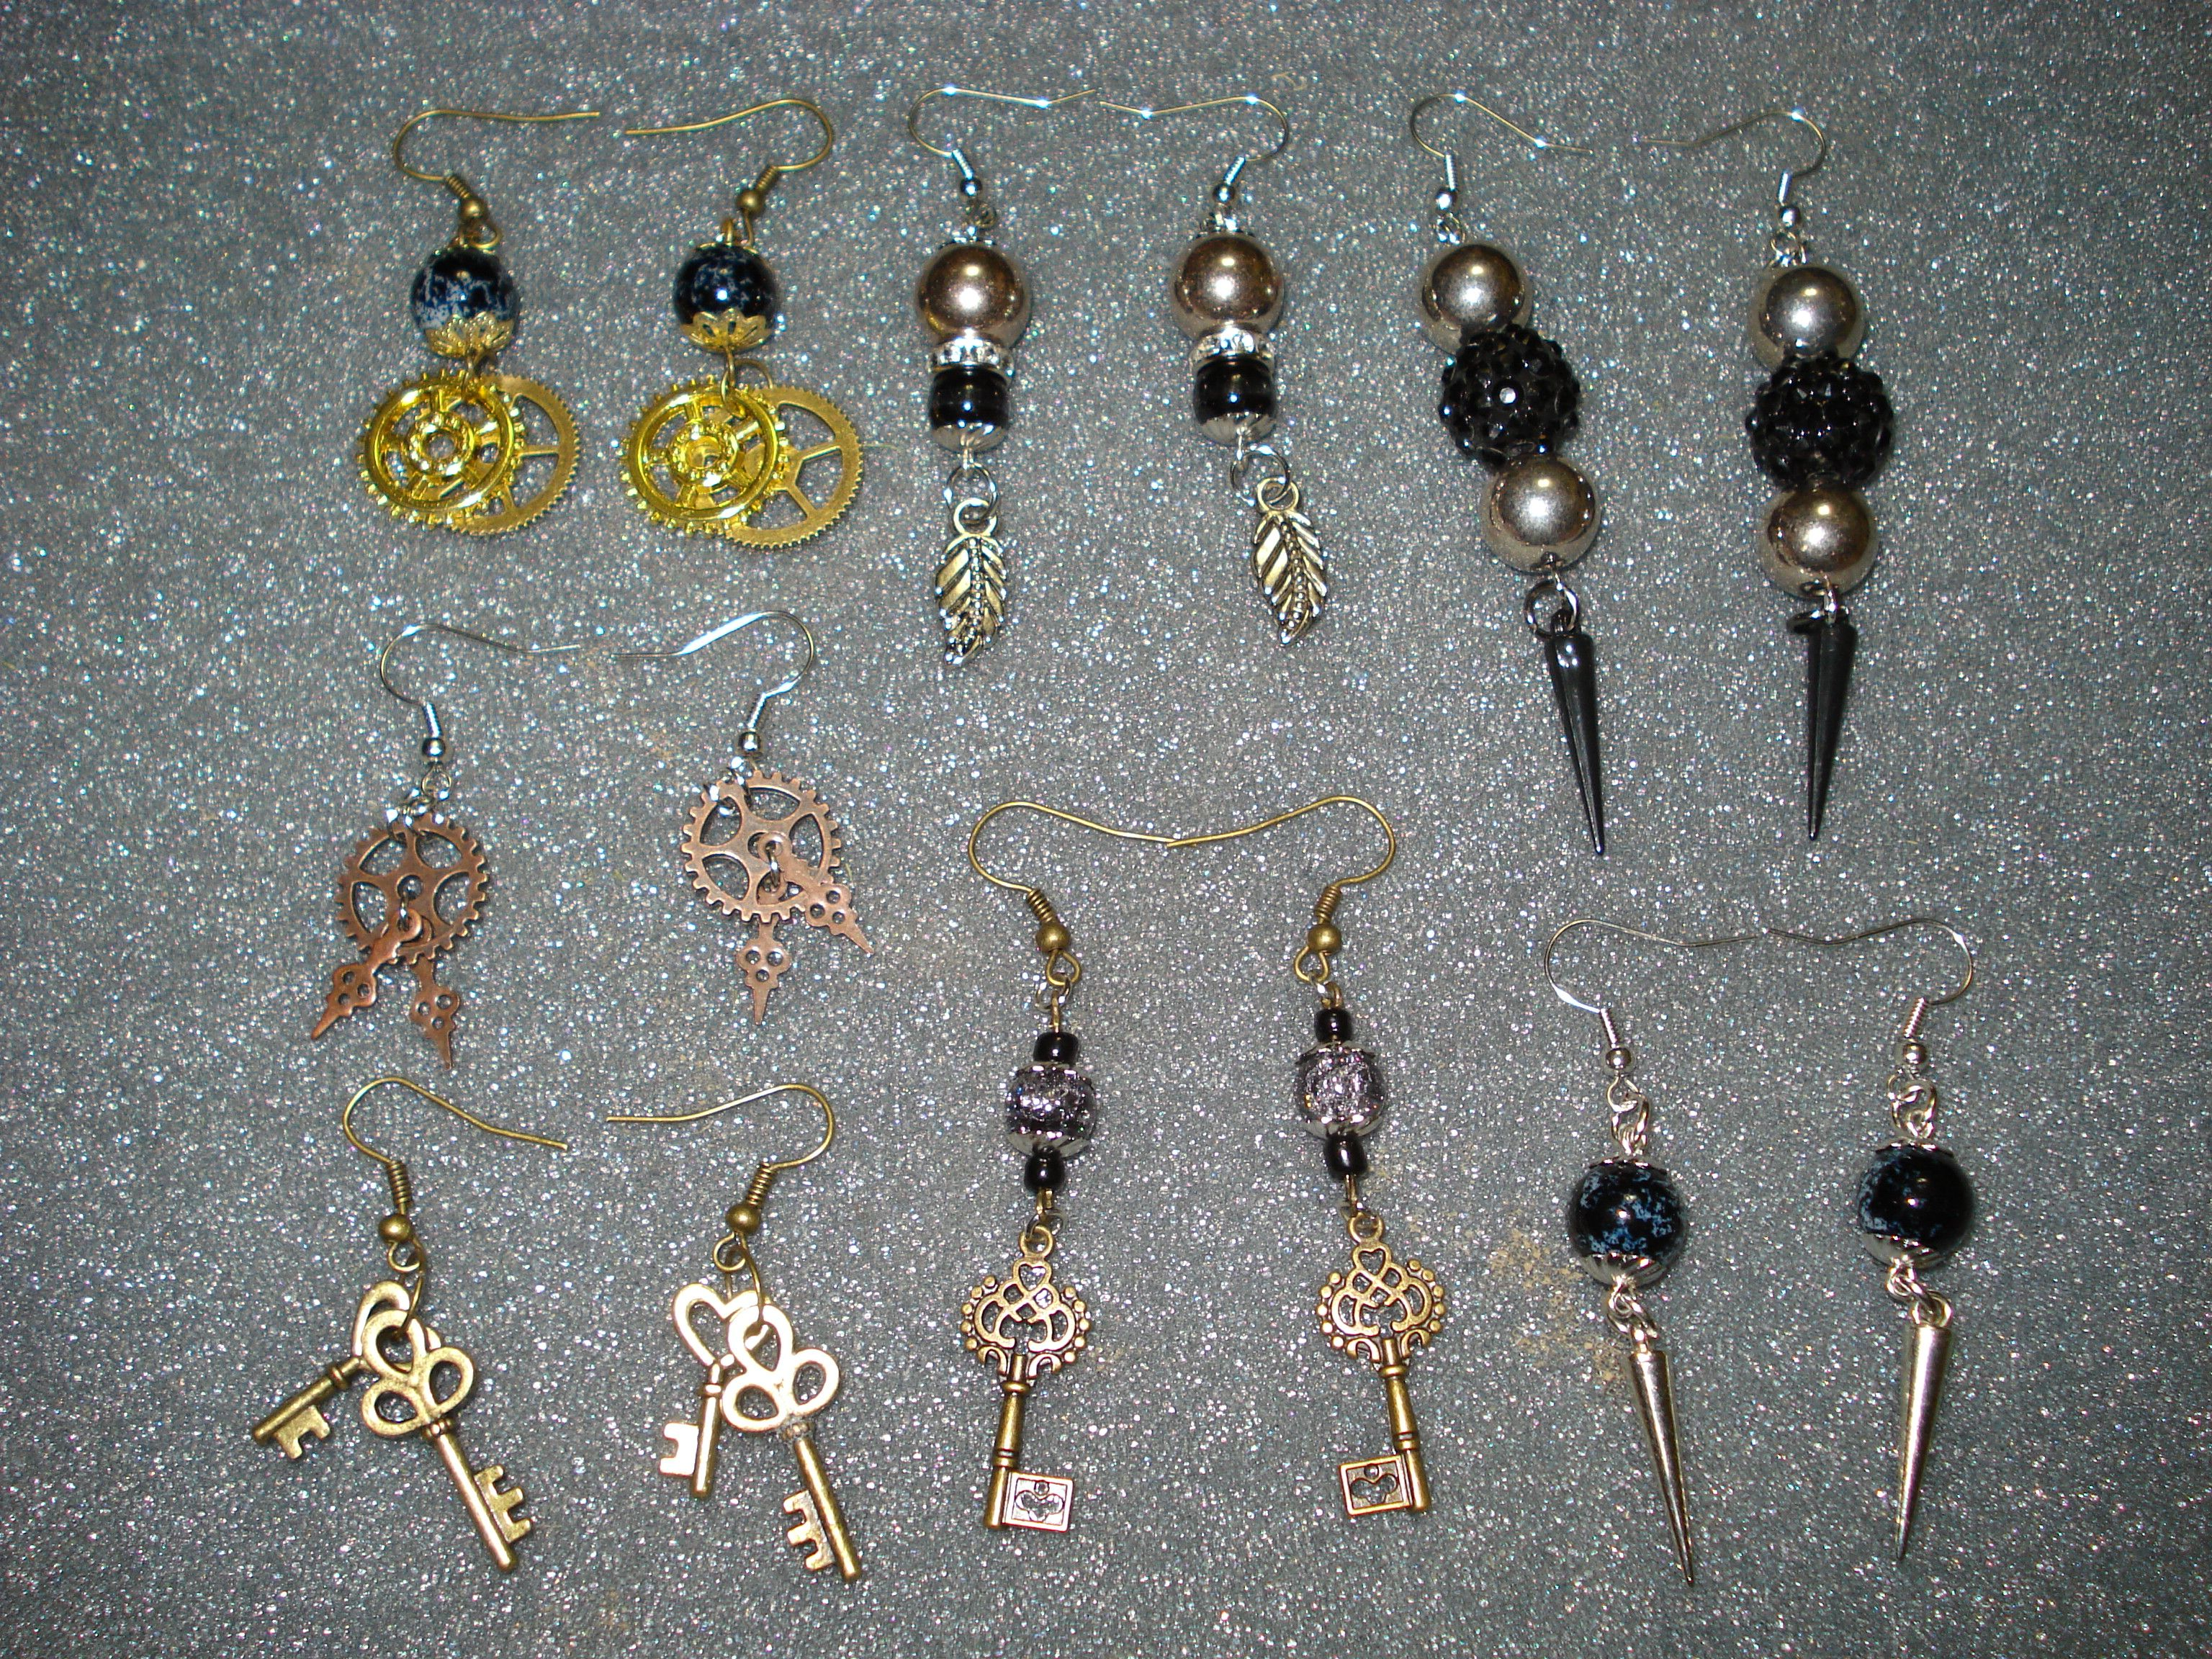 More Steampunk Jewelry: Earrings, Necklaces, Lapel Pins, and Cuff ...